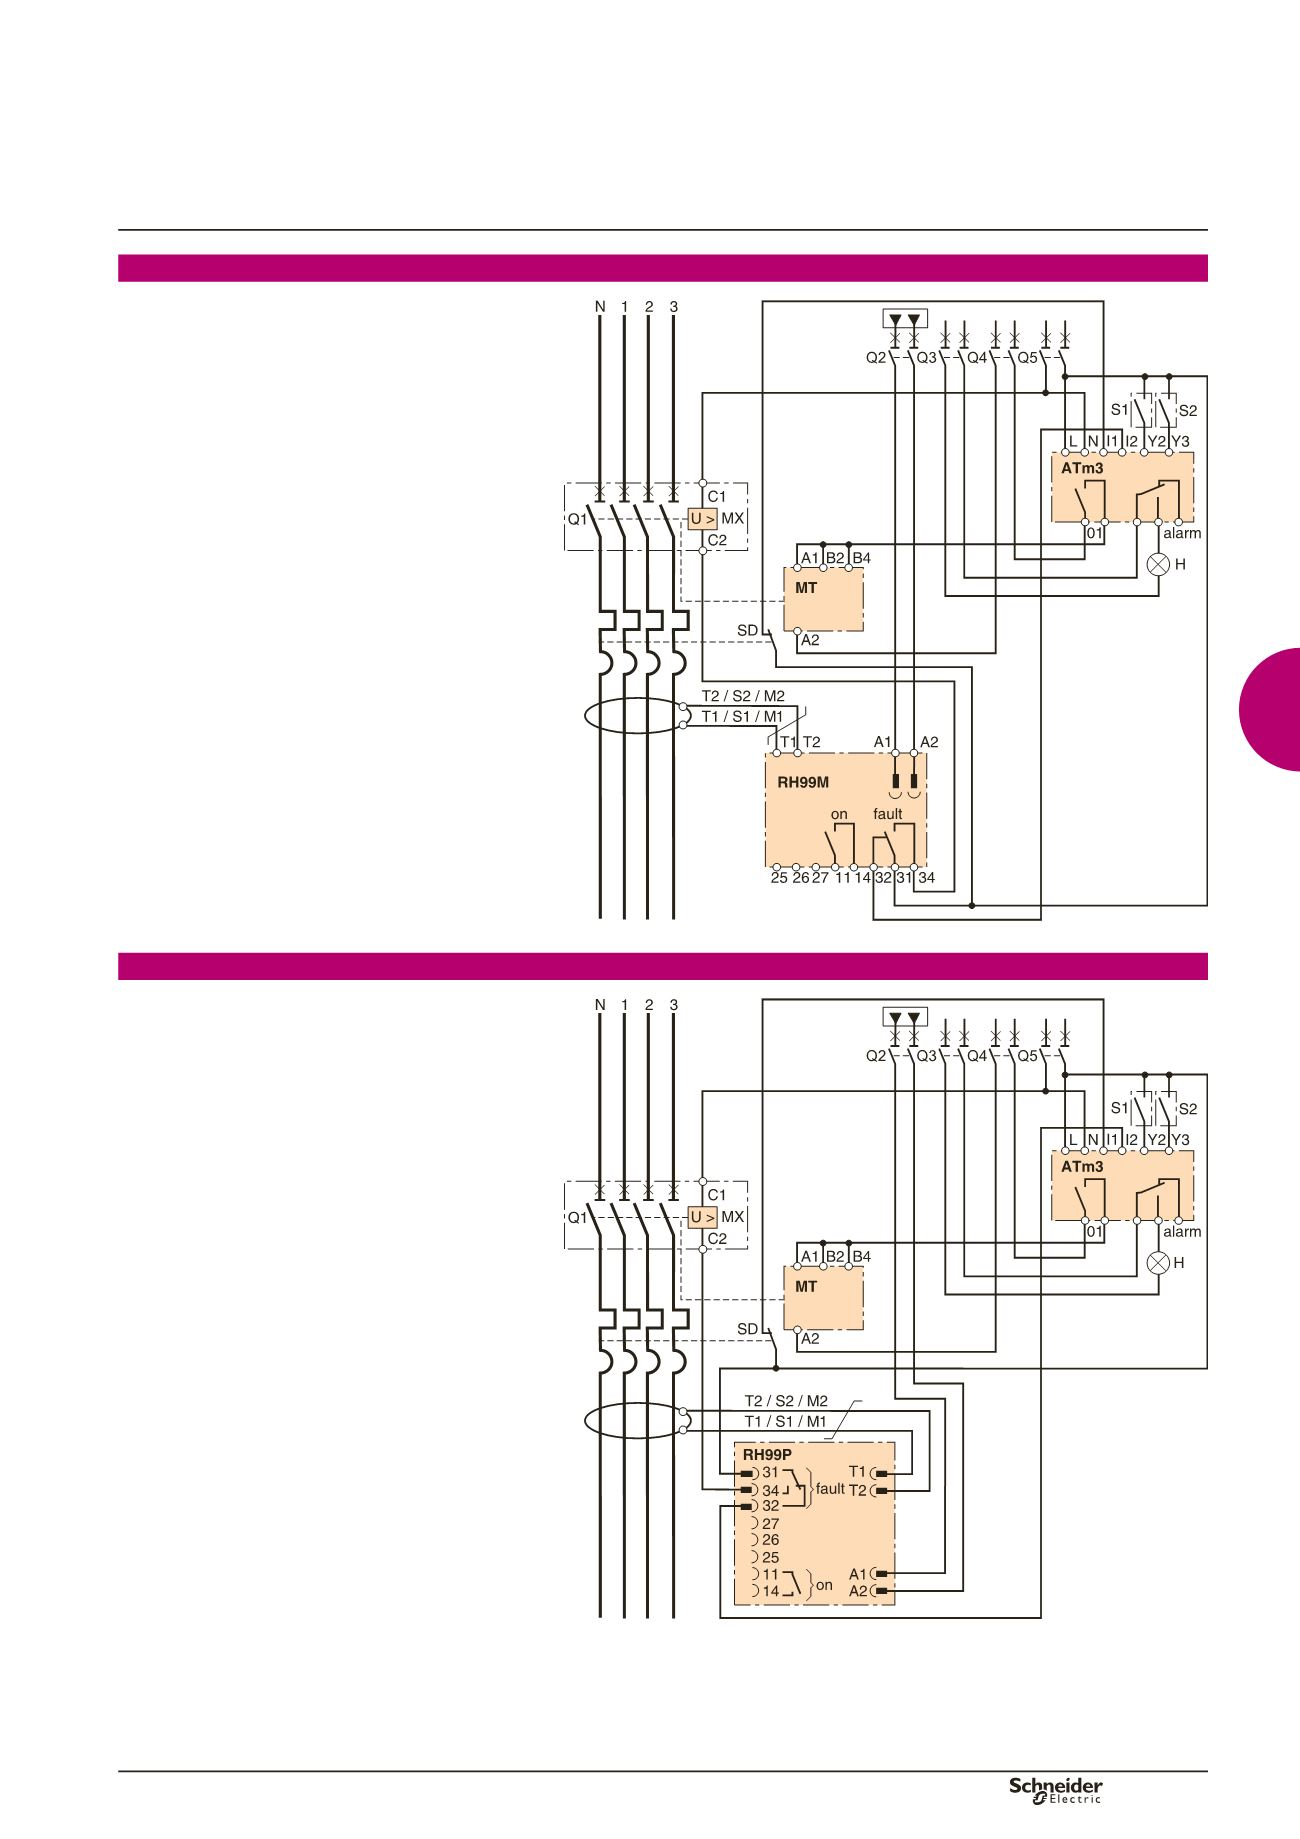 B 17 Wiring Diagram Detailed Schematics Rj45 Socket Guide Vigirex Residual Current Protection Relays Connector